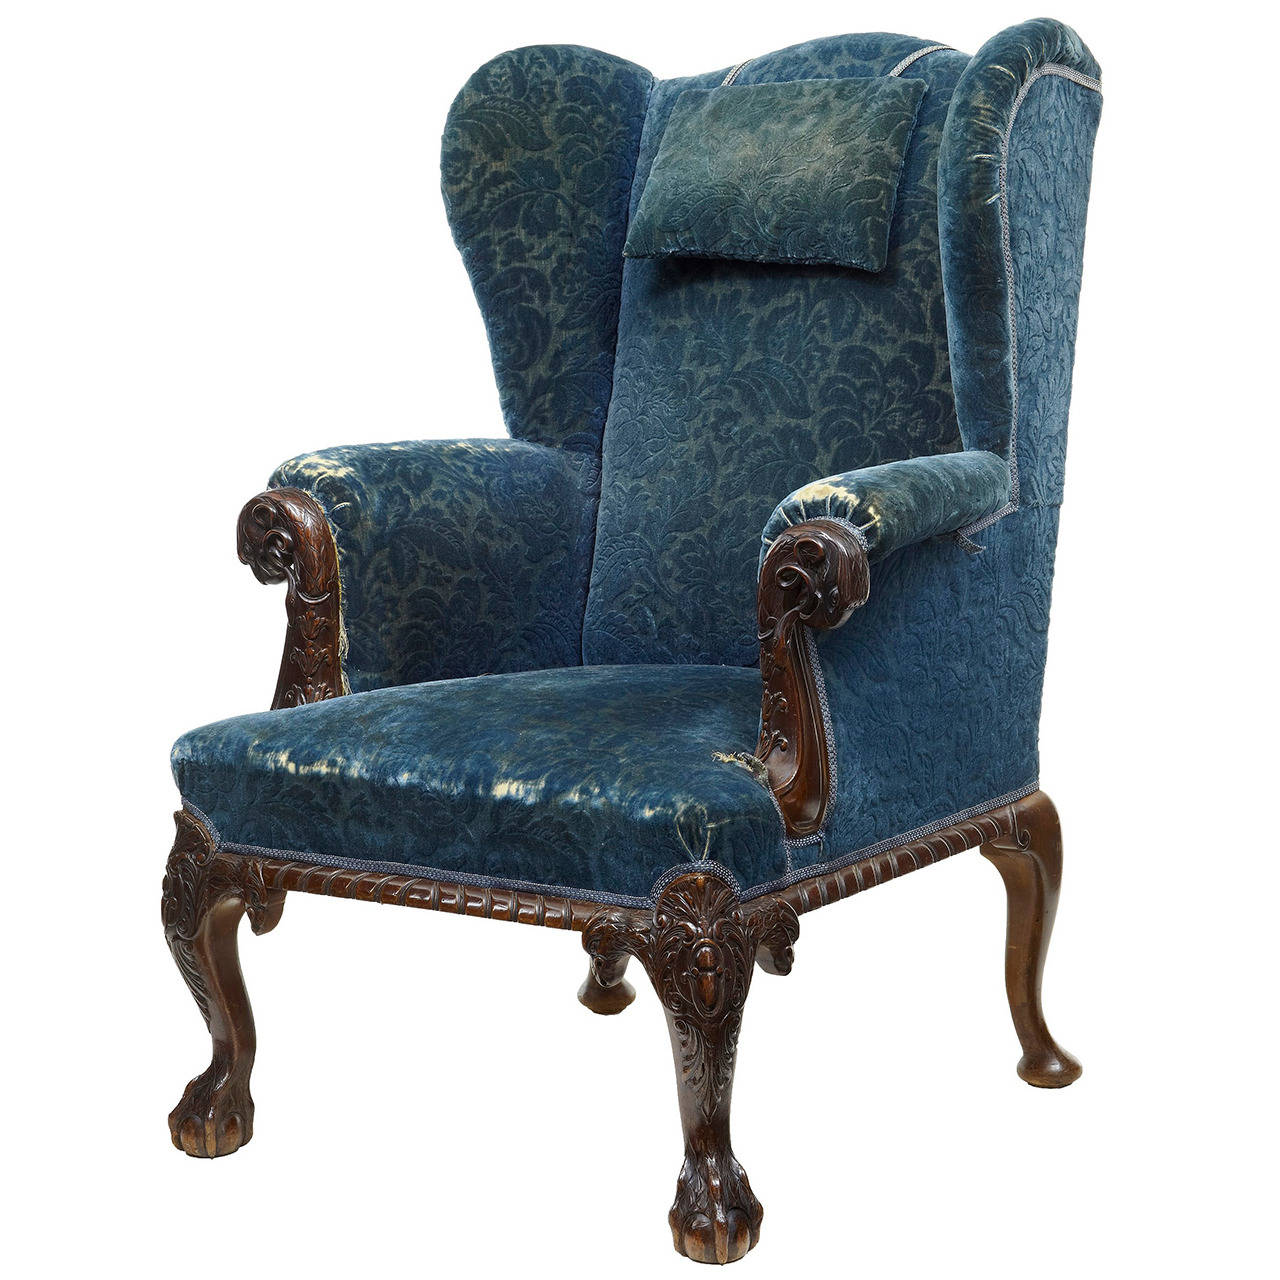 Genial Early Victorian Carved Mahogany Wingback Armchair For Sale